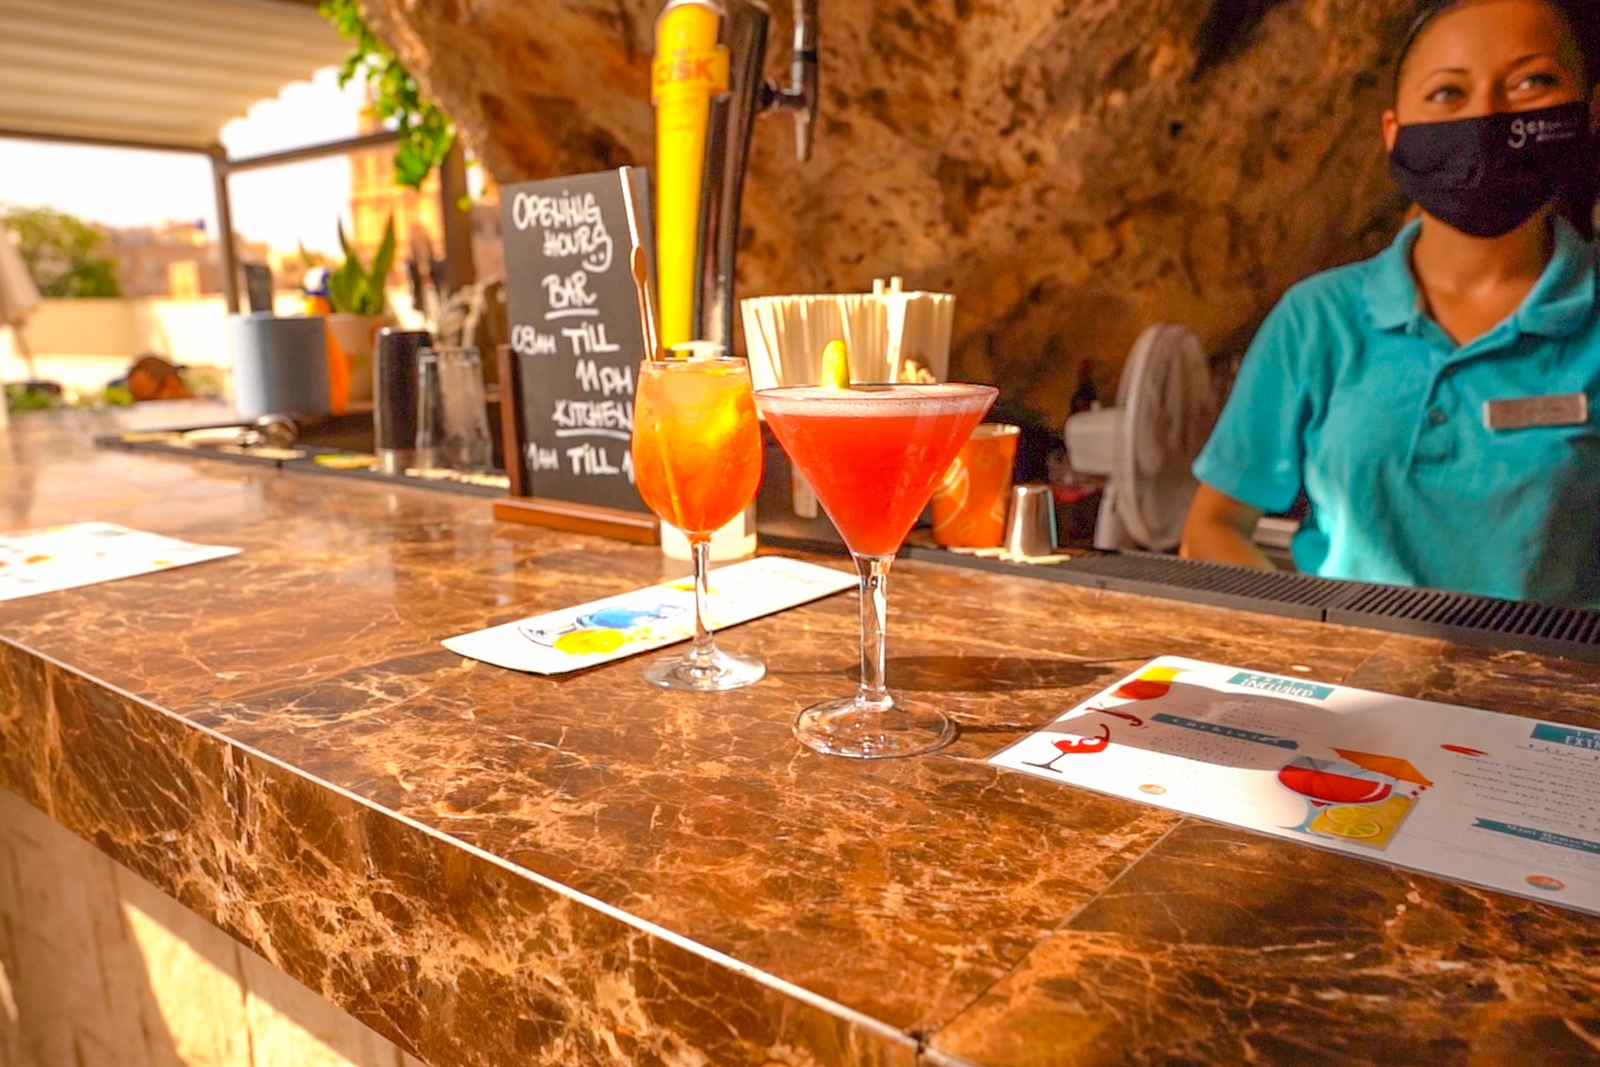 Orange cocktail in tall wine glass and red cocktail in small triangular glass on a bar